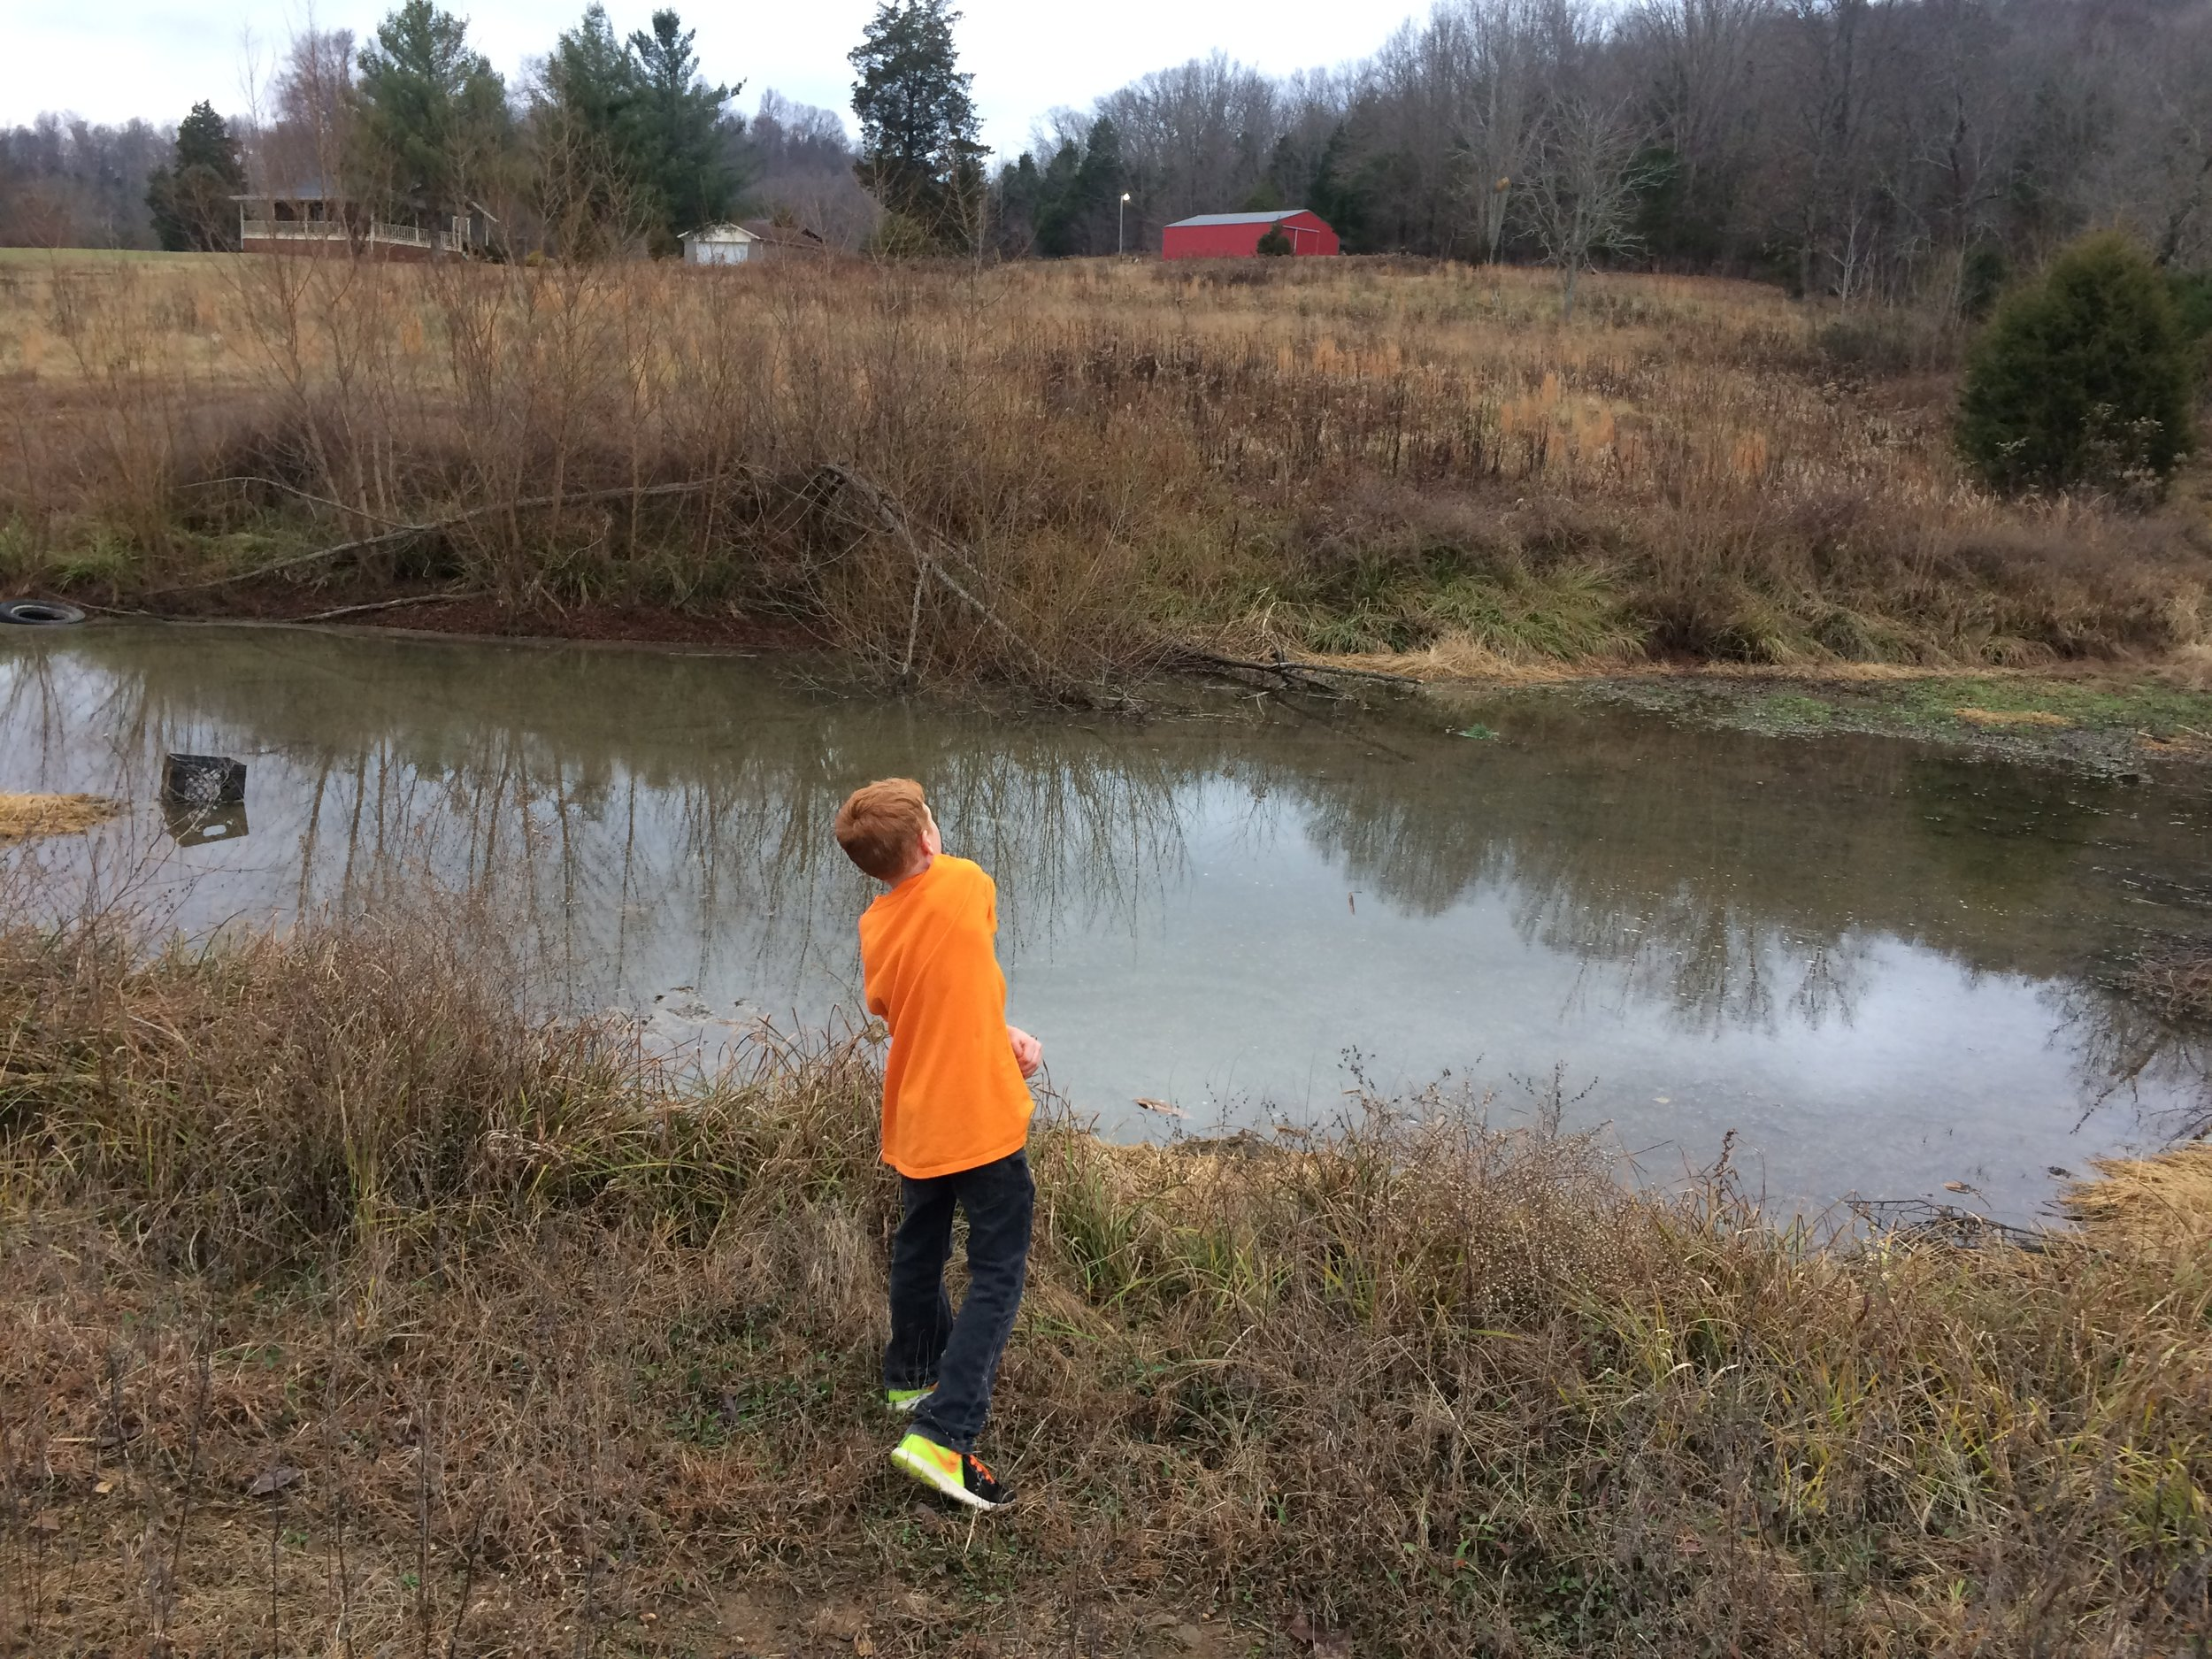 Christopher at the pond